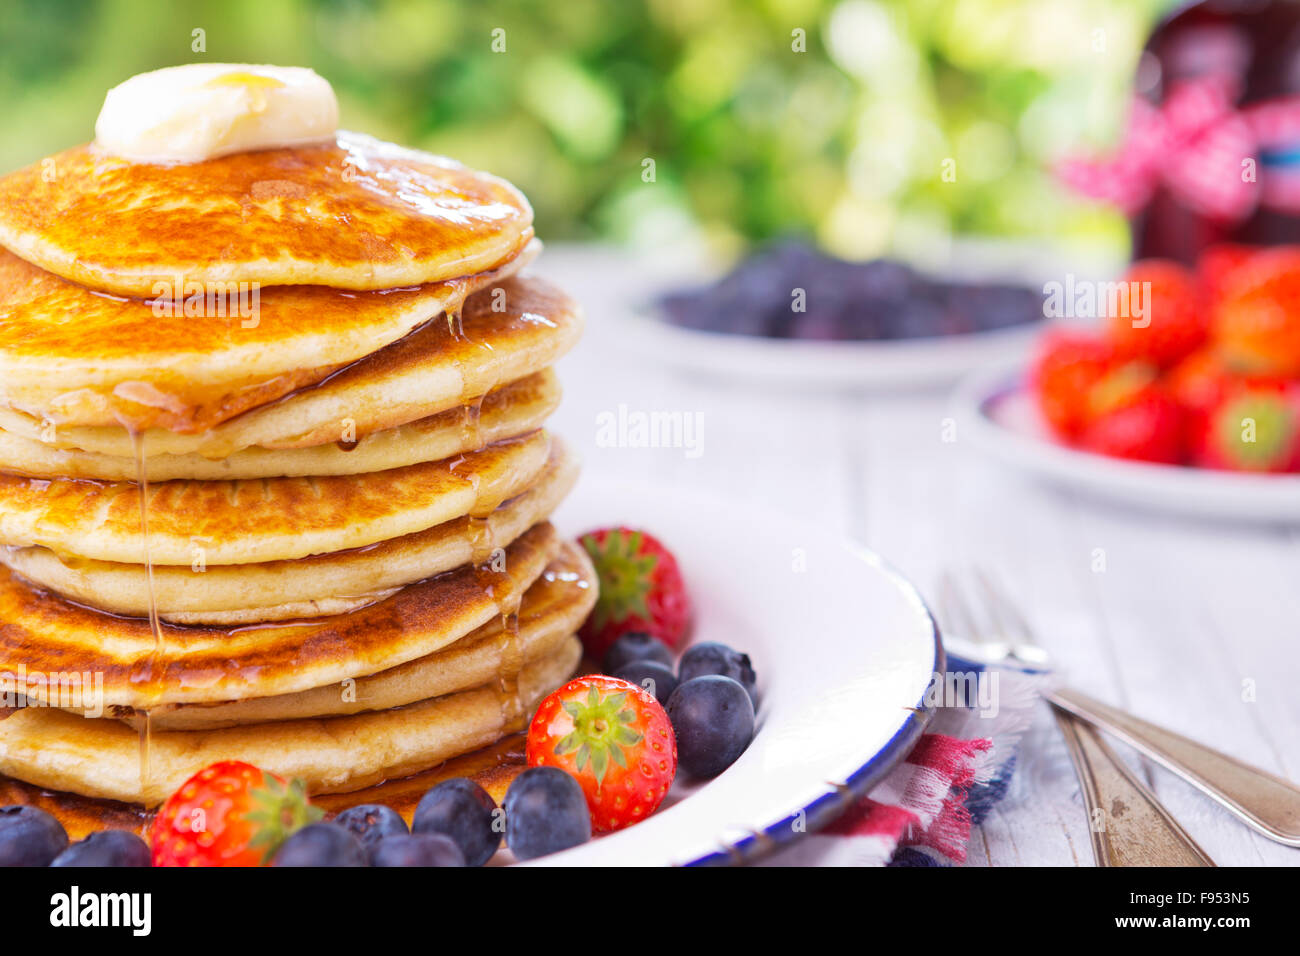 A stack of homemade pancakes with fresh fruit, butter and syrup. - Stock Image